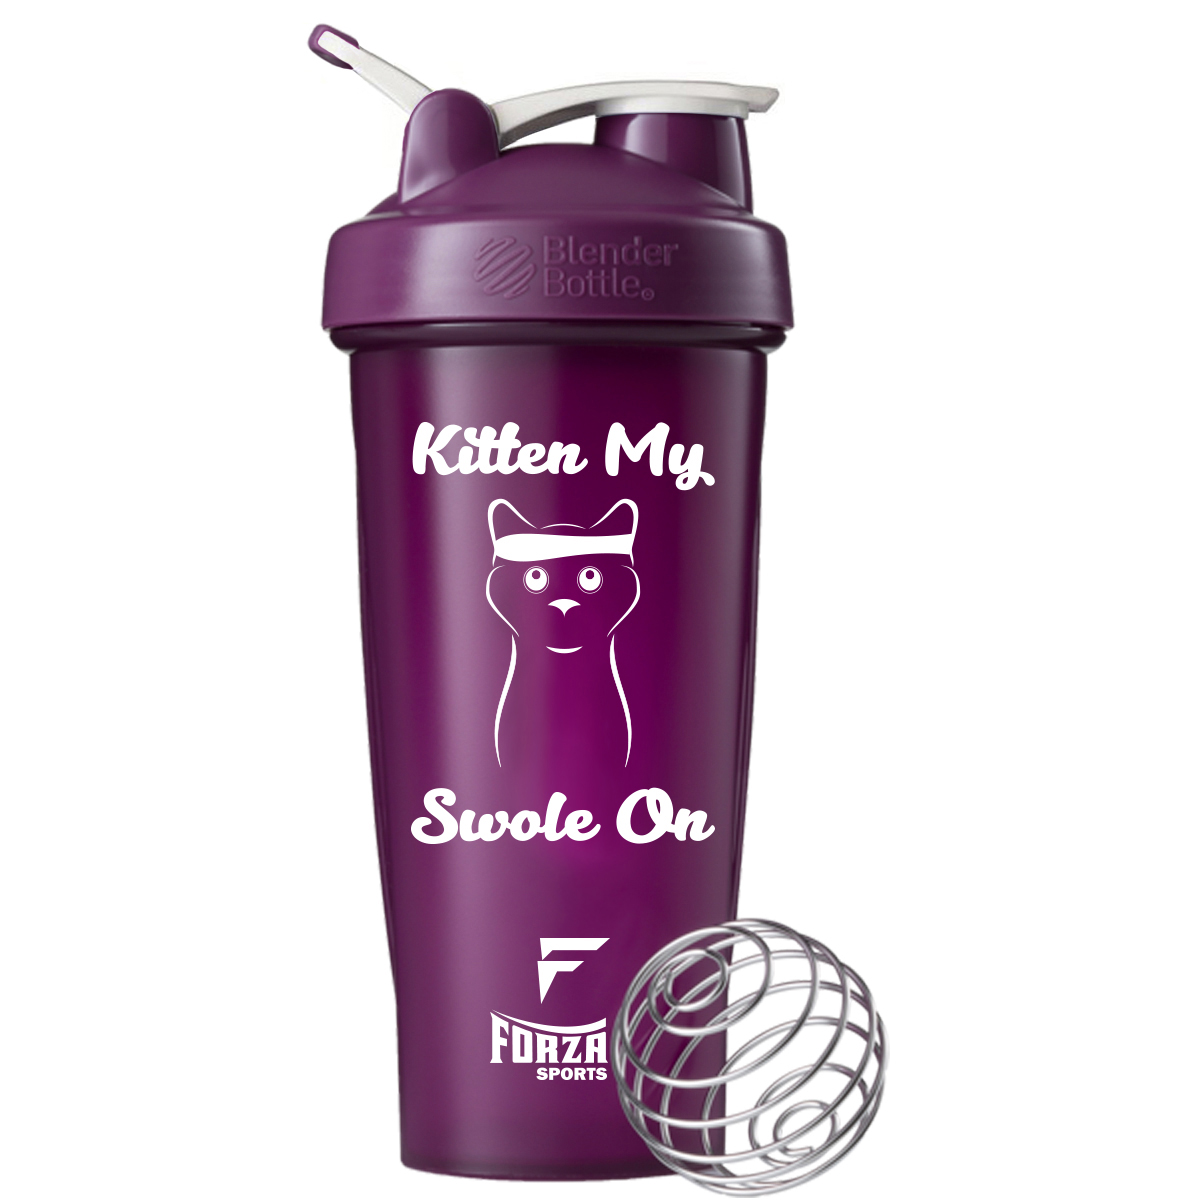 Blender-Bottle-x-Forza-Sports-Classic-28-oz-Shaker-Mixer-Cup-with-Loop-Top thumbnail 35